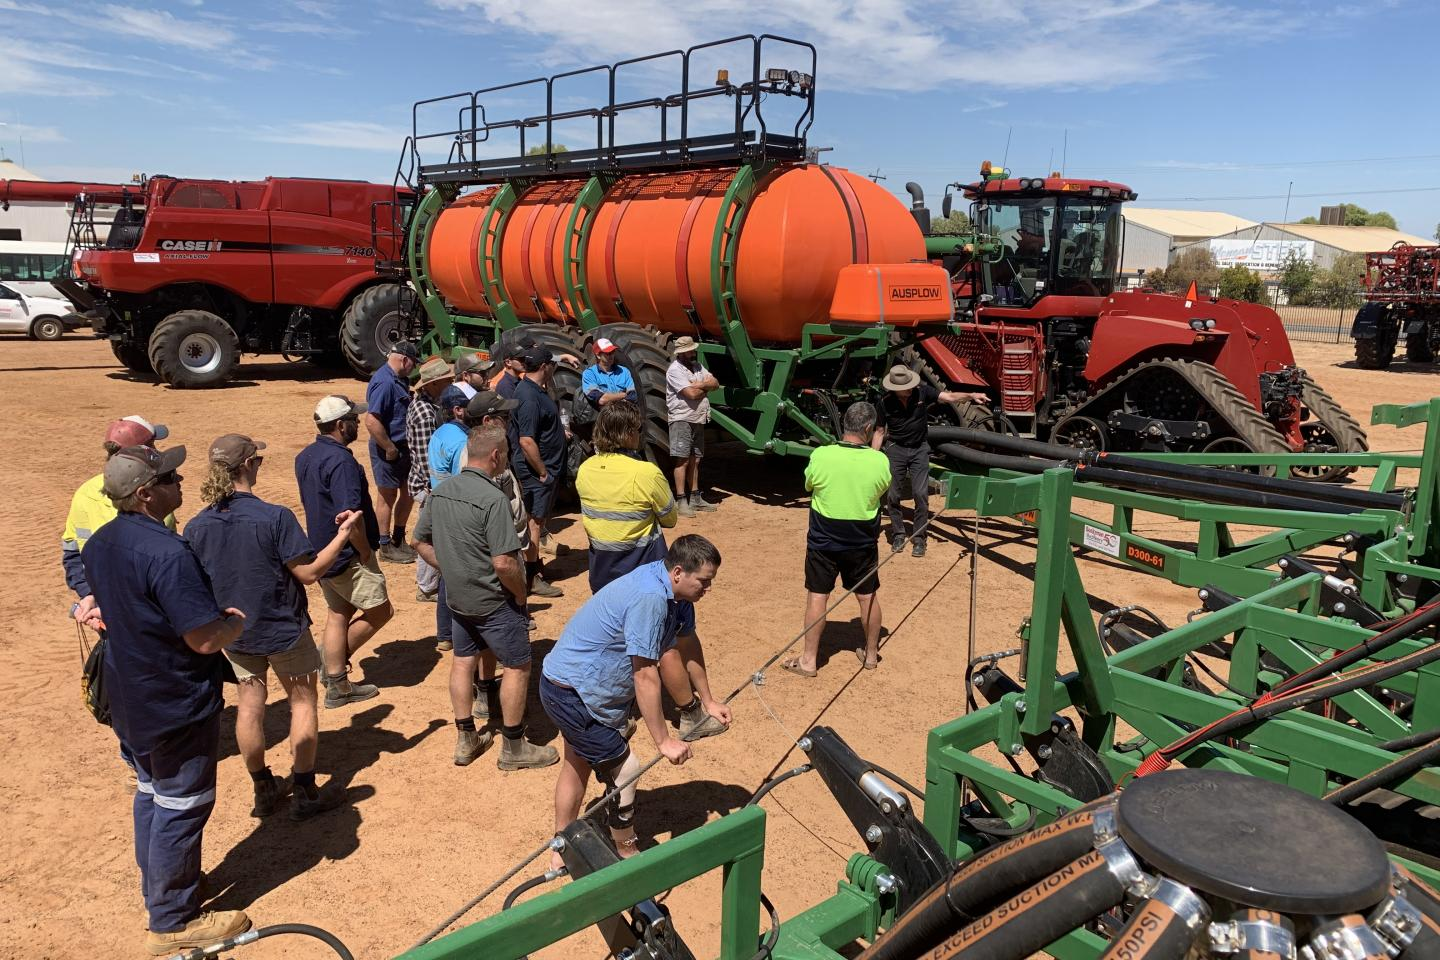 The DBS and Multistream were displayed so farmers could check out new changes to the products. A discussion on parts also proved popular.